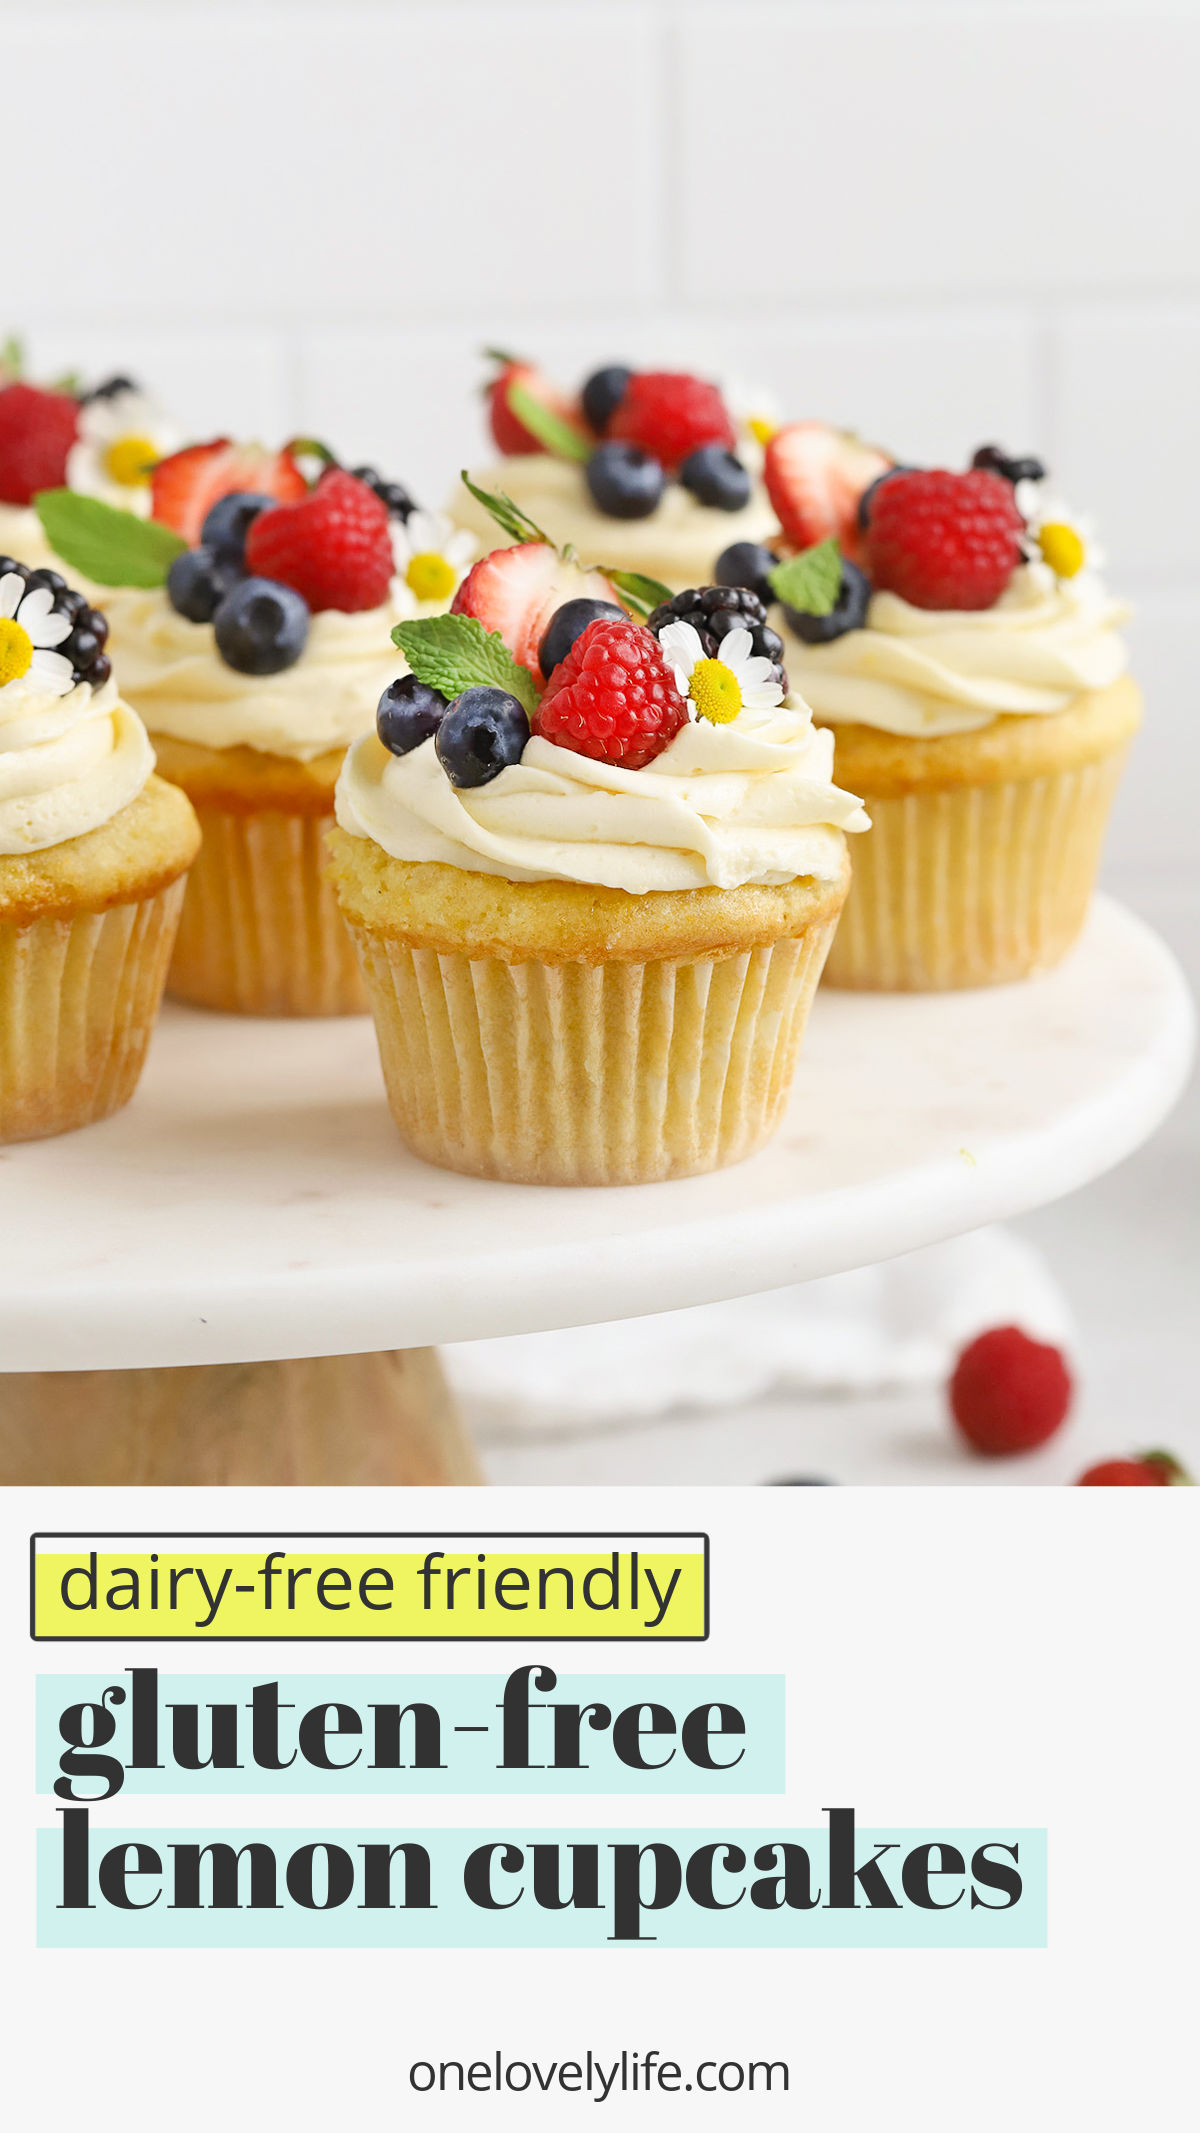 Gluten-Free Lemon Cupcakes with Lemon Frosting. These light, fluffy lemon cupcakes are lovely for any special occasion! (Dairy-Free Friendly) // Dairy-Free Lemon Frosting // Dairy Free Lemon Cupcakes // Lemon Buttercream // Dairy Free Lemon Buttercream // Gluten Free Cupcakes // Gluten Free Lemon Cupcakes Recipe #glutenfree #cupcakes #frosting #lemon #dairyfree